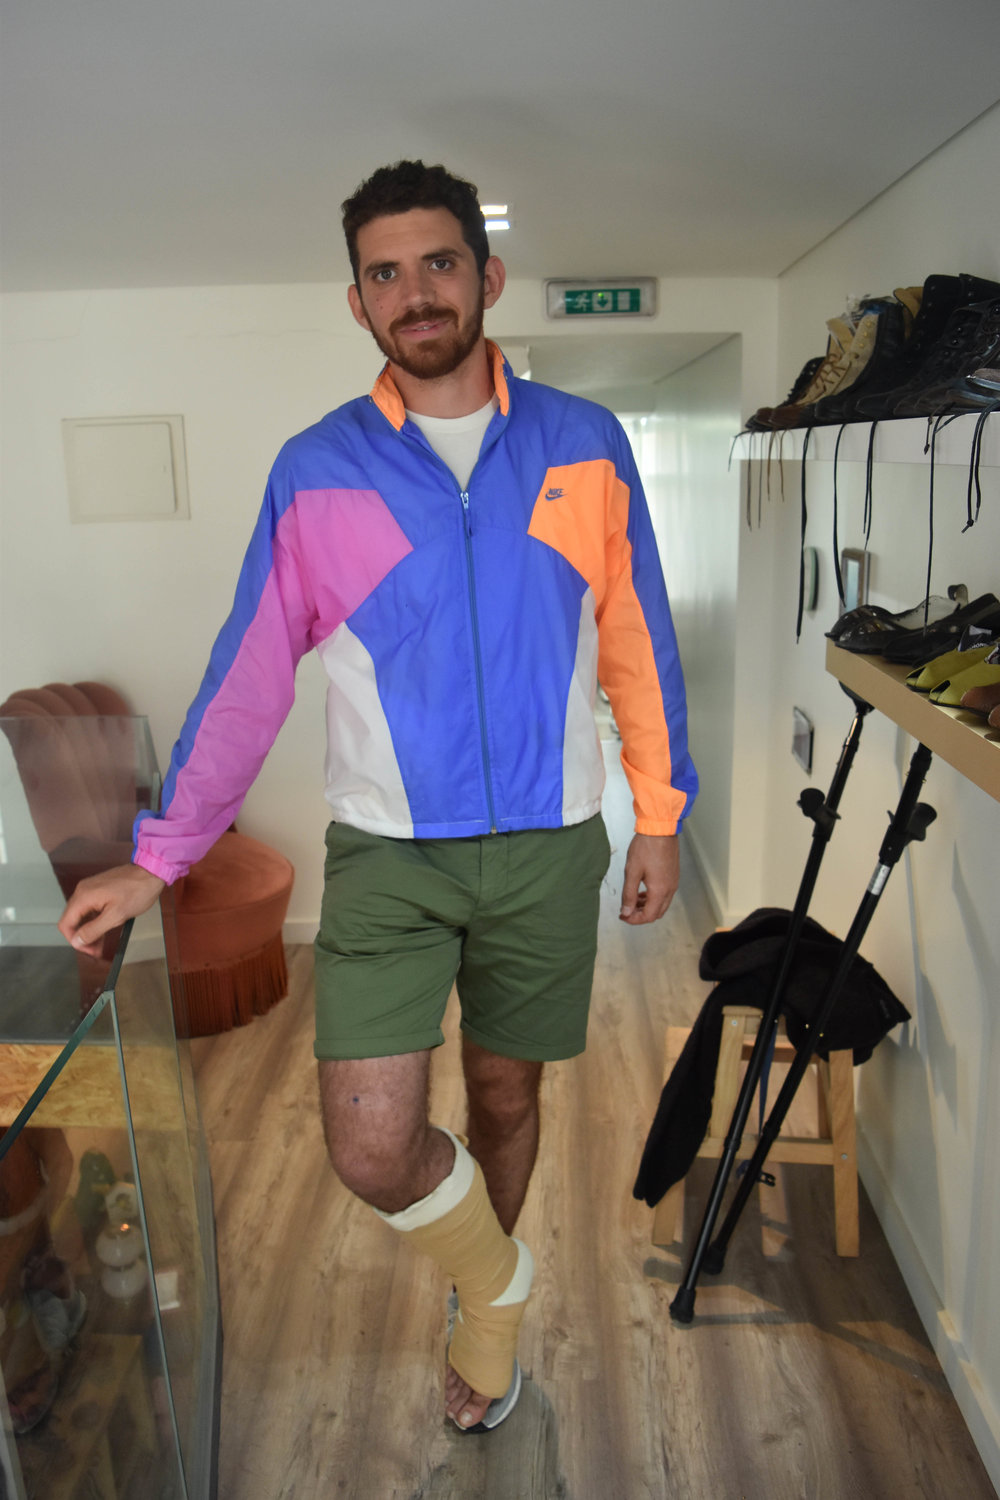 """Chris tore his Achilles before the trip but that won't stop him from getting more attention through a """"look-at-me"""" wind breaker."""